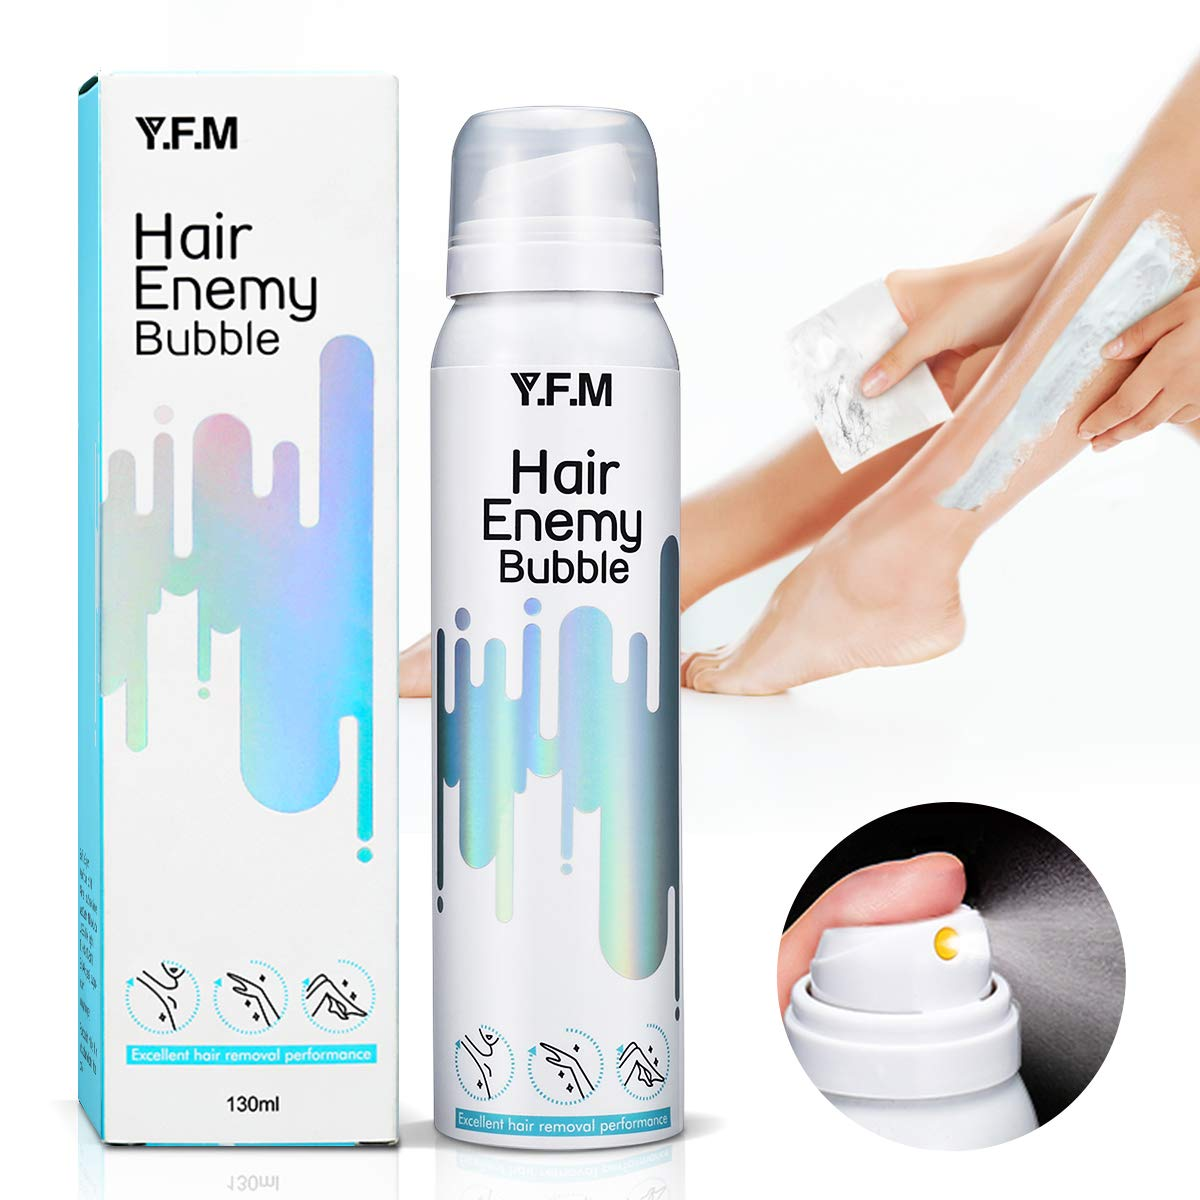 Hair Removal Spray,Y.F.M Hair Remove Painless Hair Remover Bubble Anti Allergic Mousse Spray Foam Mousse Creams Depilatories Women & Men for Face or all Body Mousse 130ml